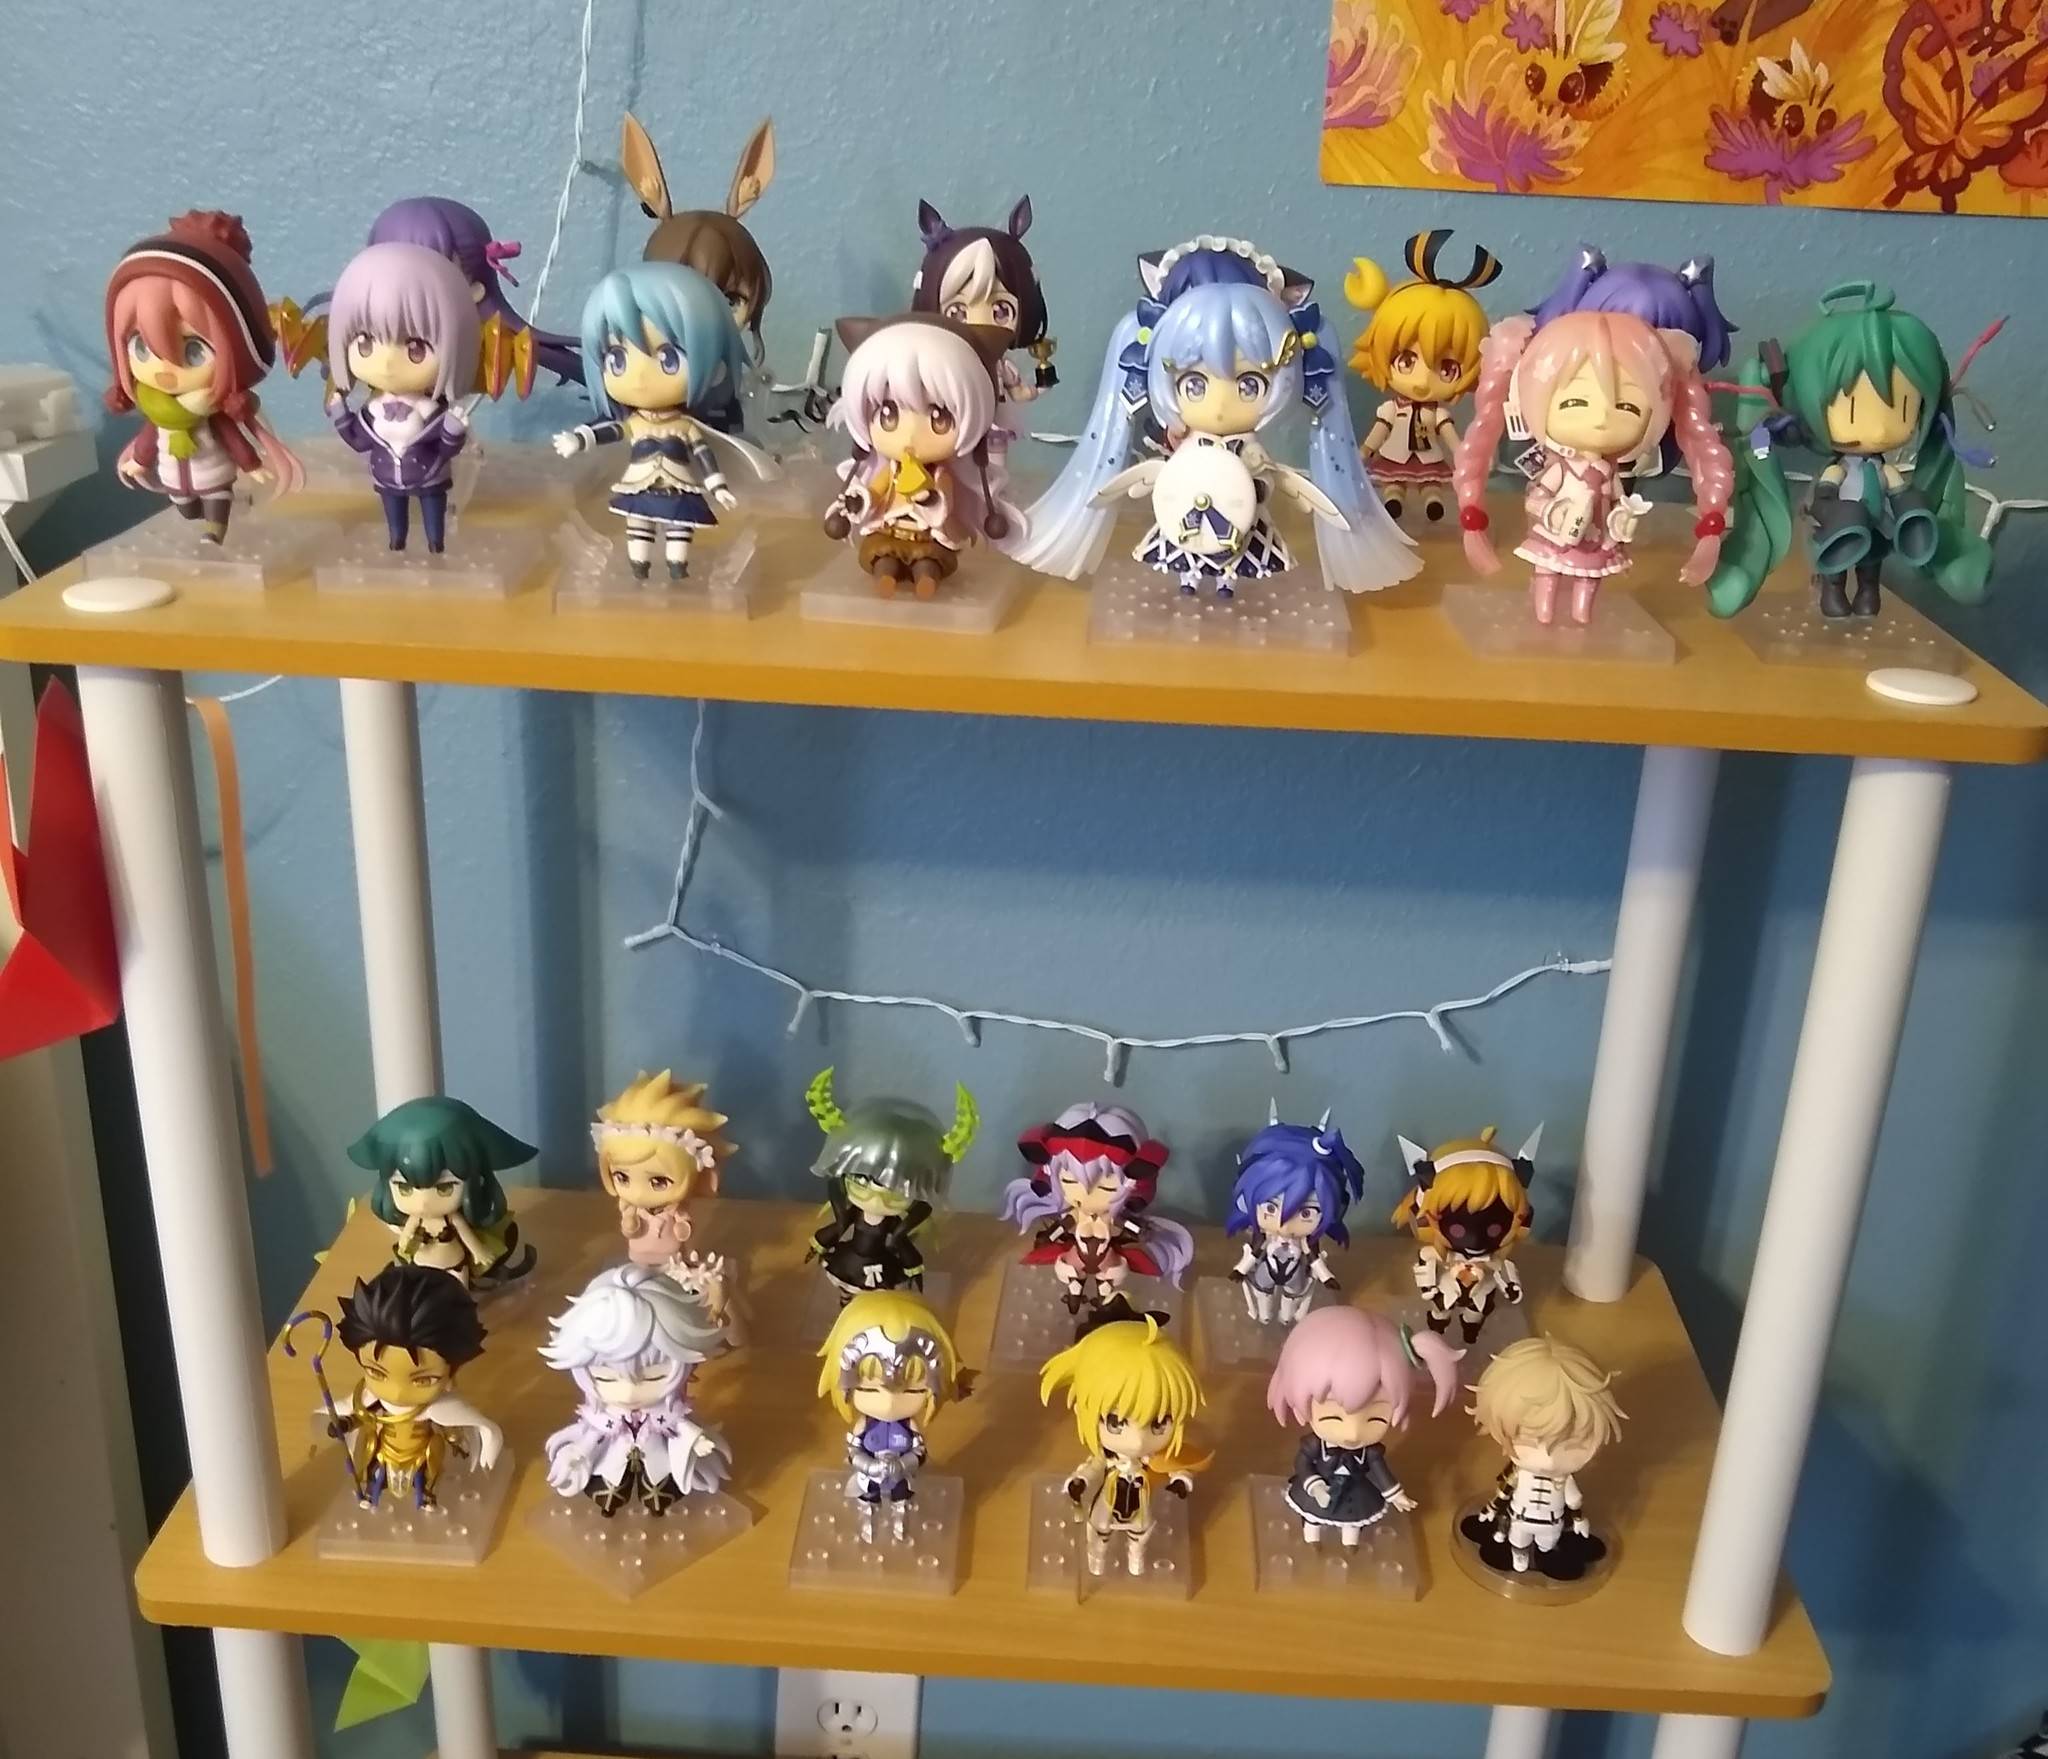 https://static.myfigurecollection.net/upload/pictures/2021/07/01/2768266.jpeg